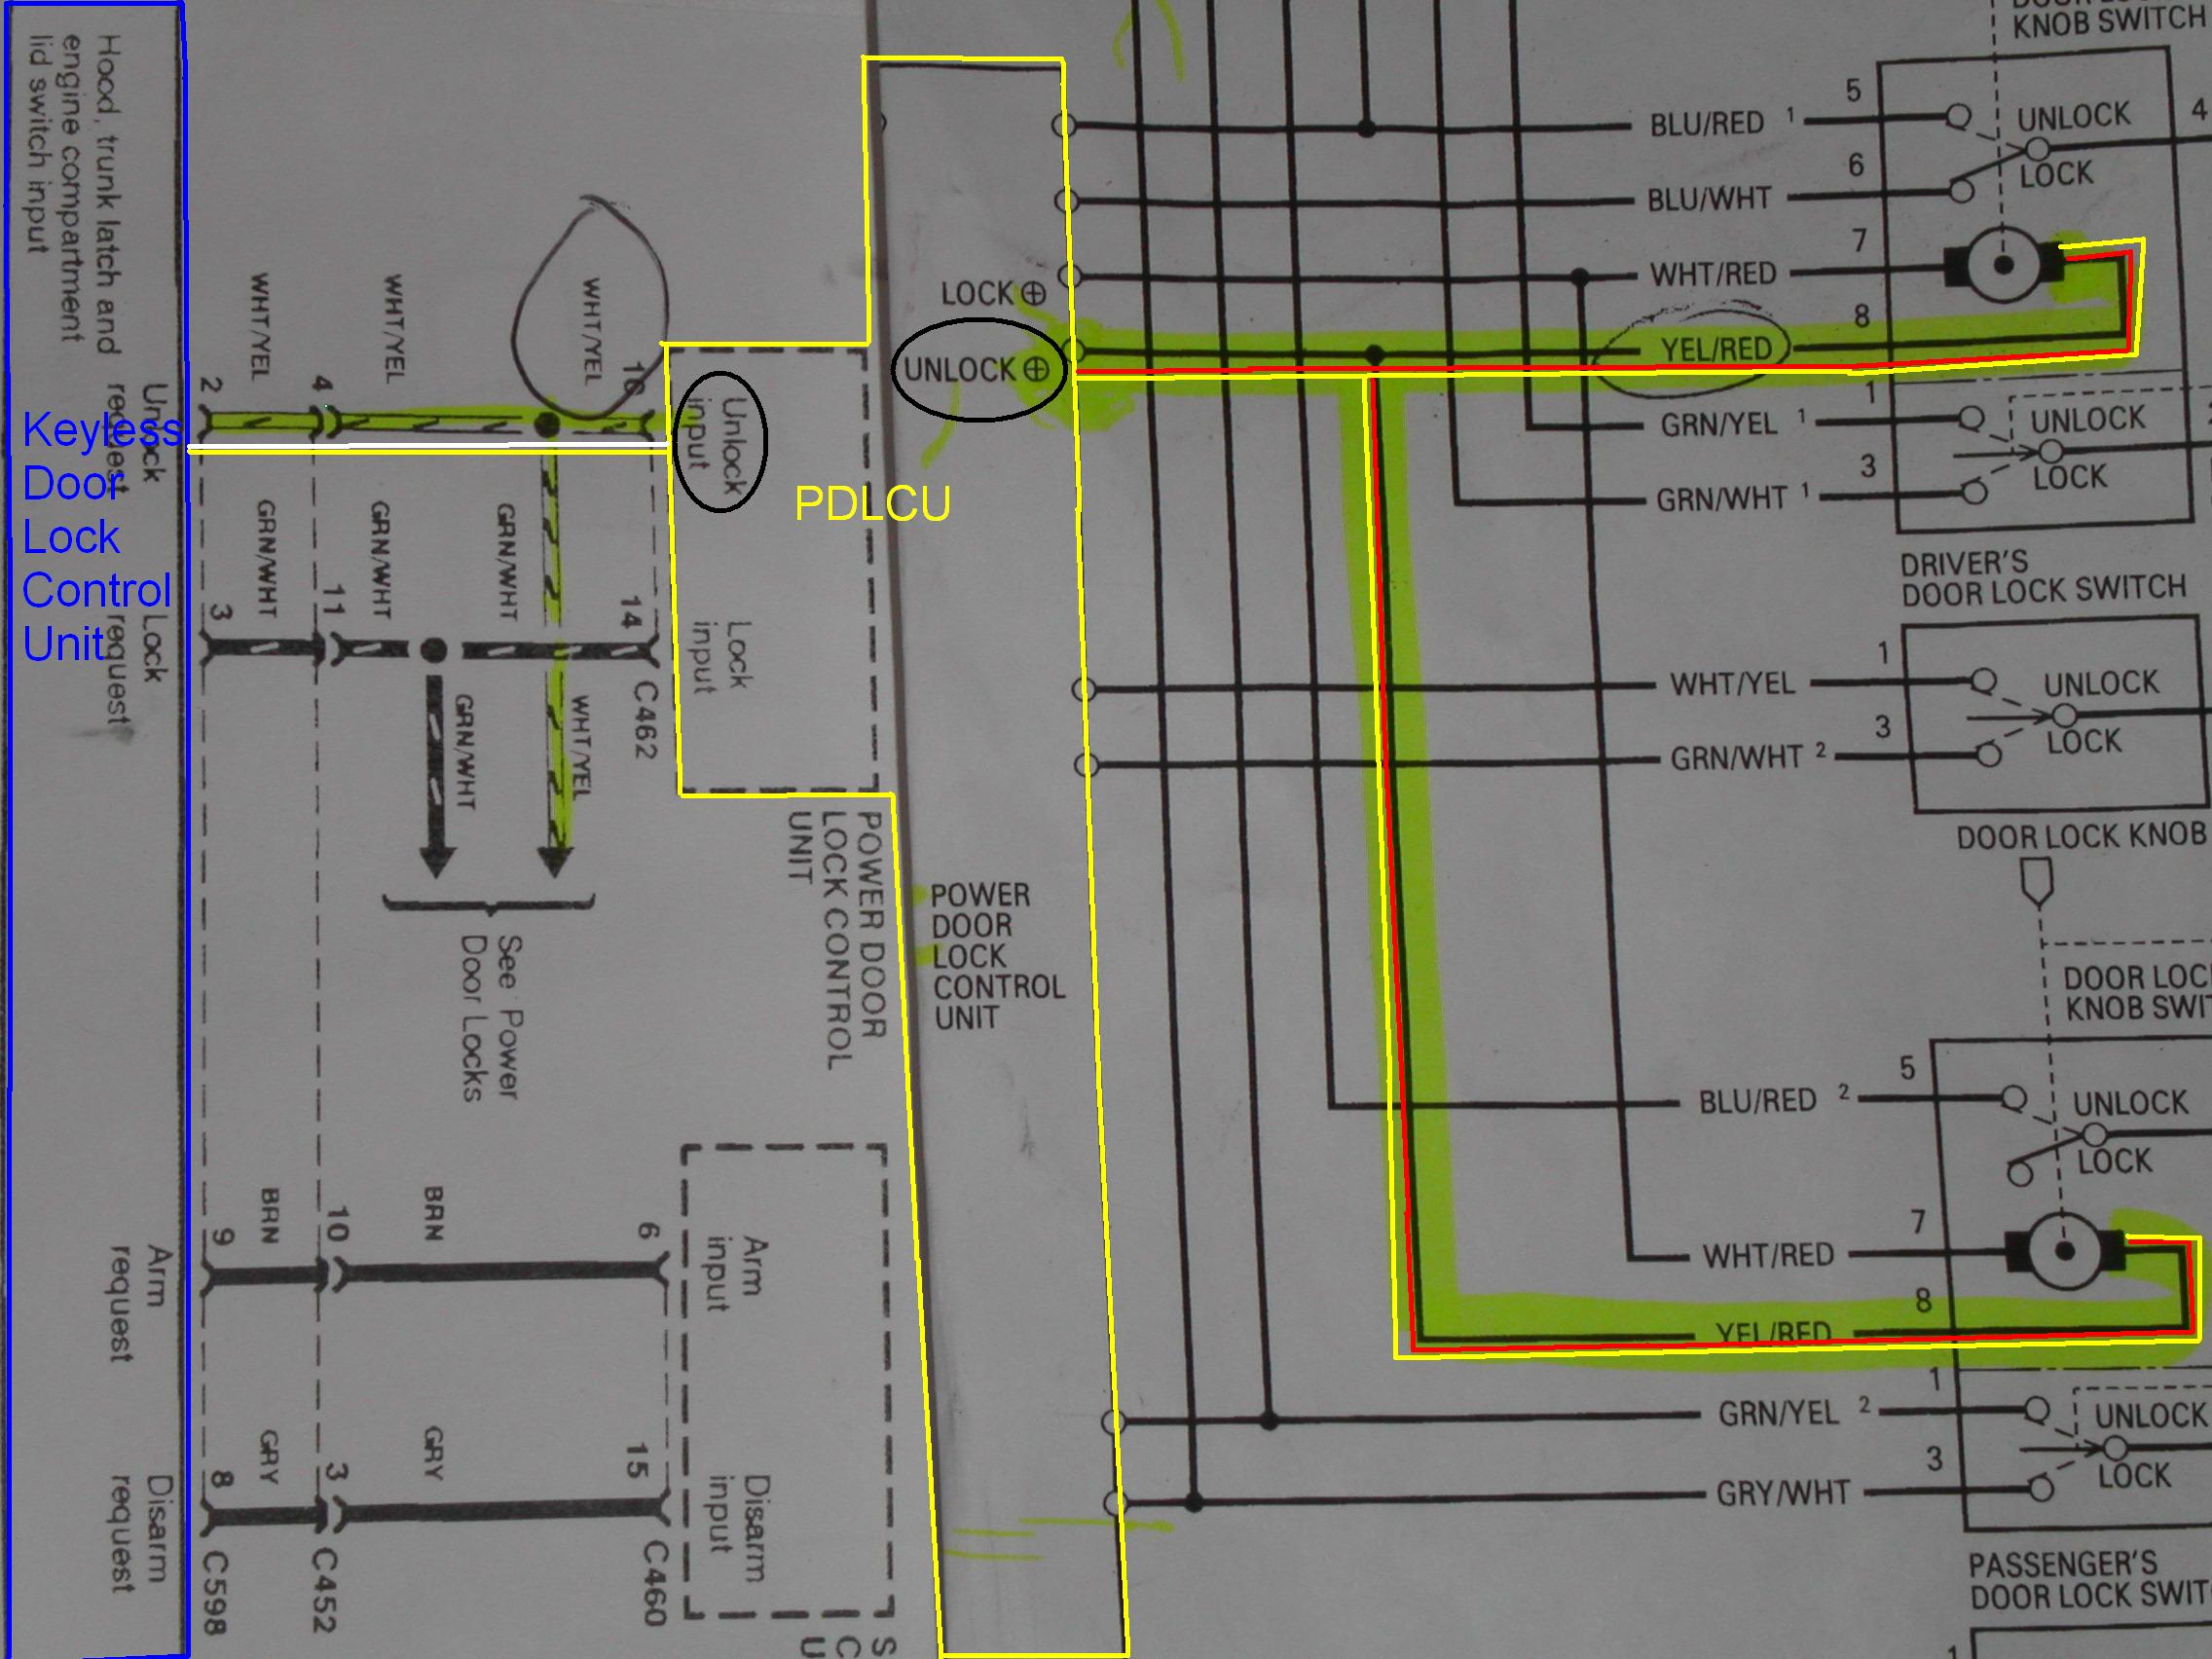 International 4900 Wiring Diagram Pdf | Wiring Diagram - International 4700 Wiring Diagram Pdf